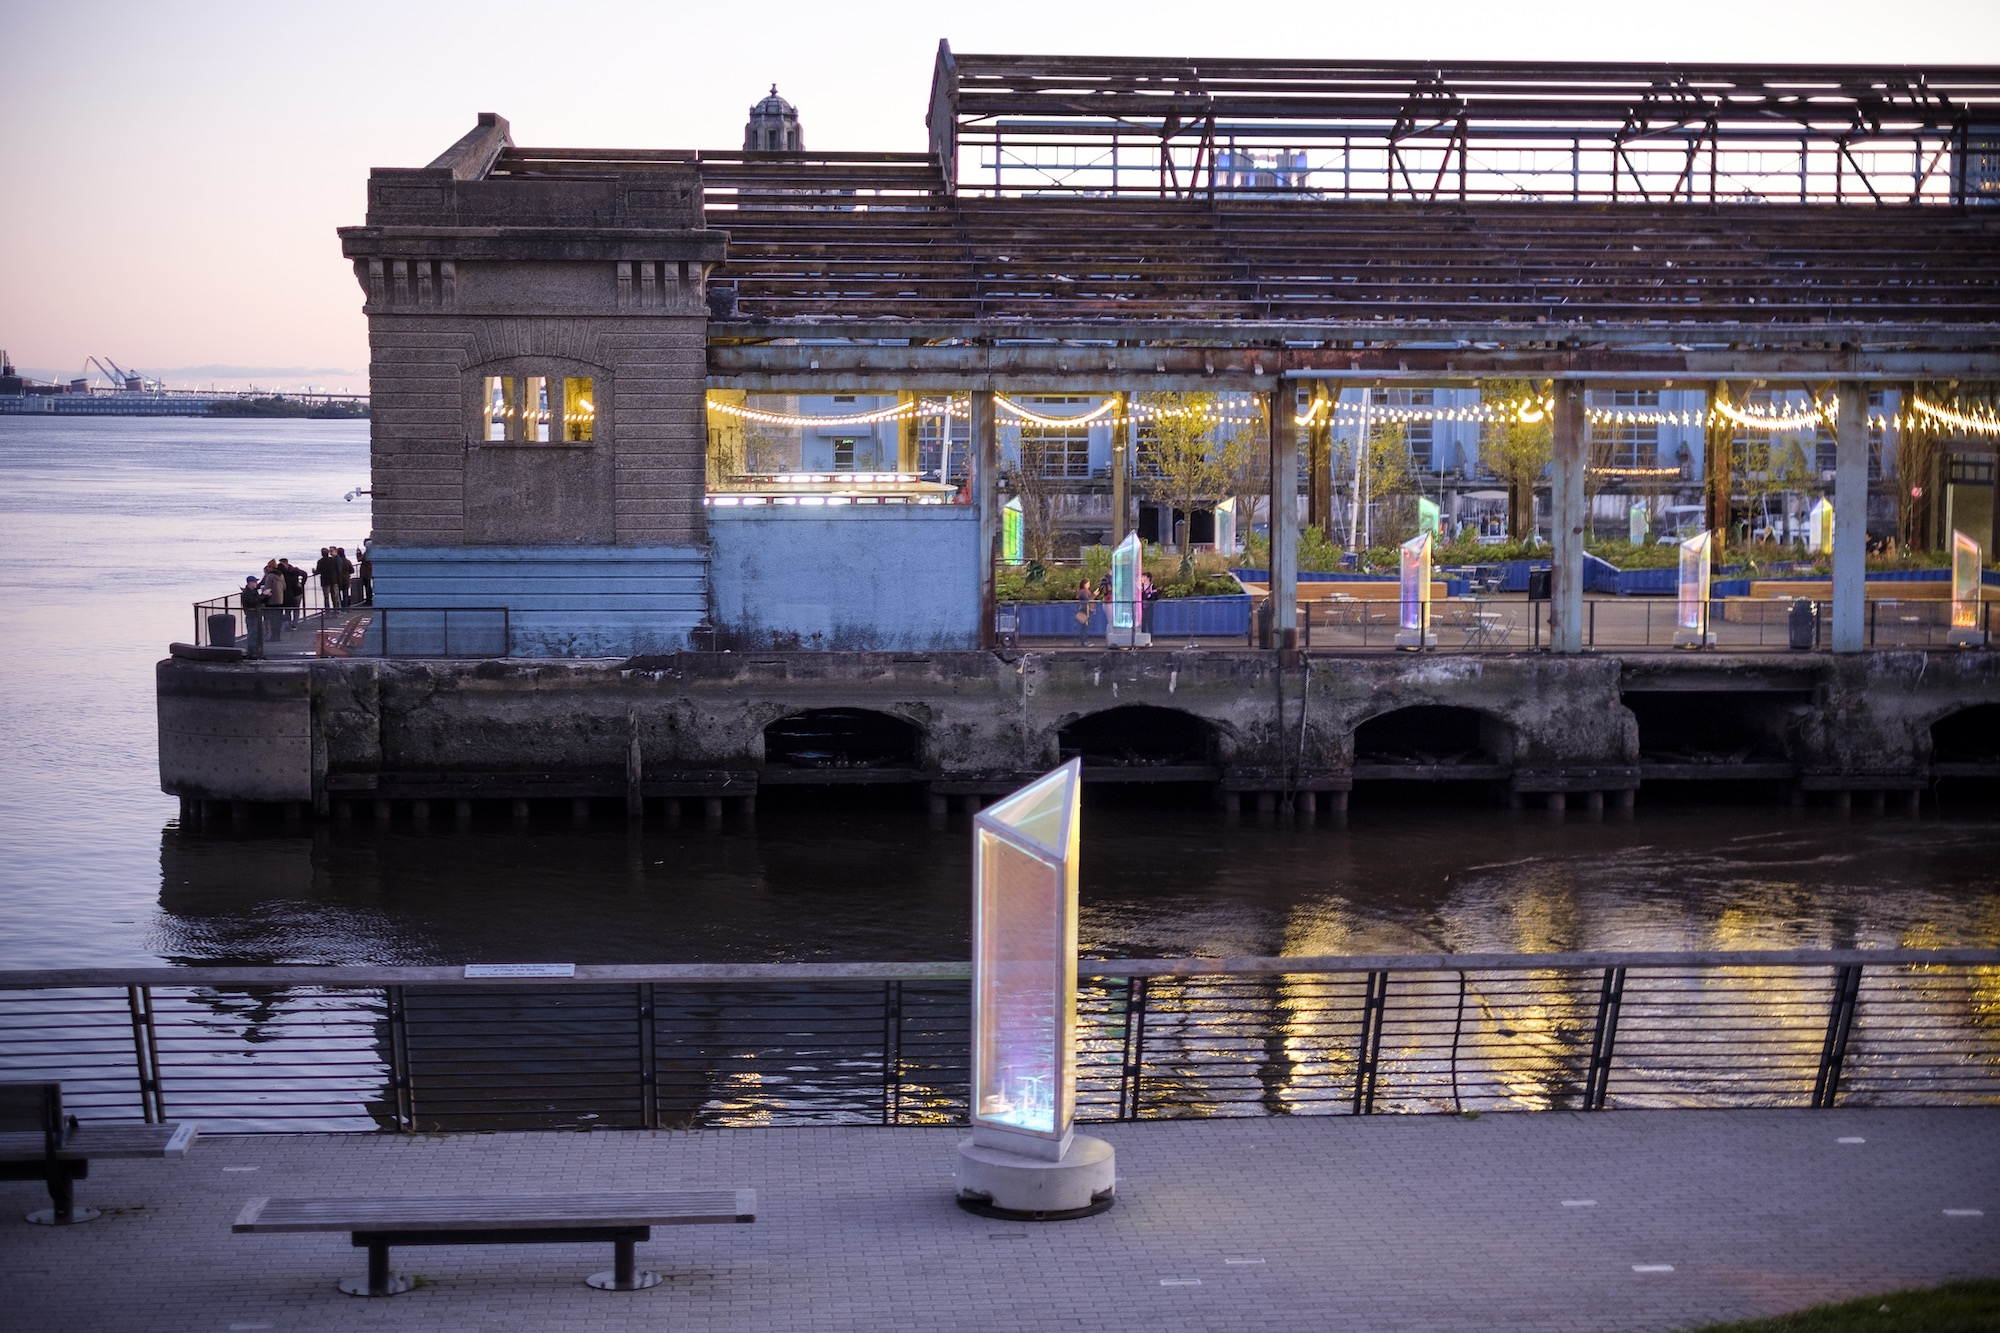 Exterior of the Cherry Street Pier at sunset